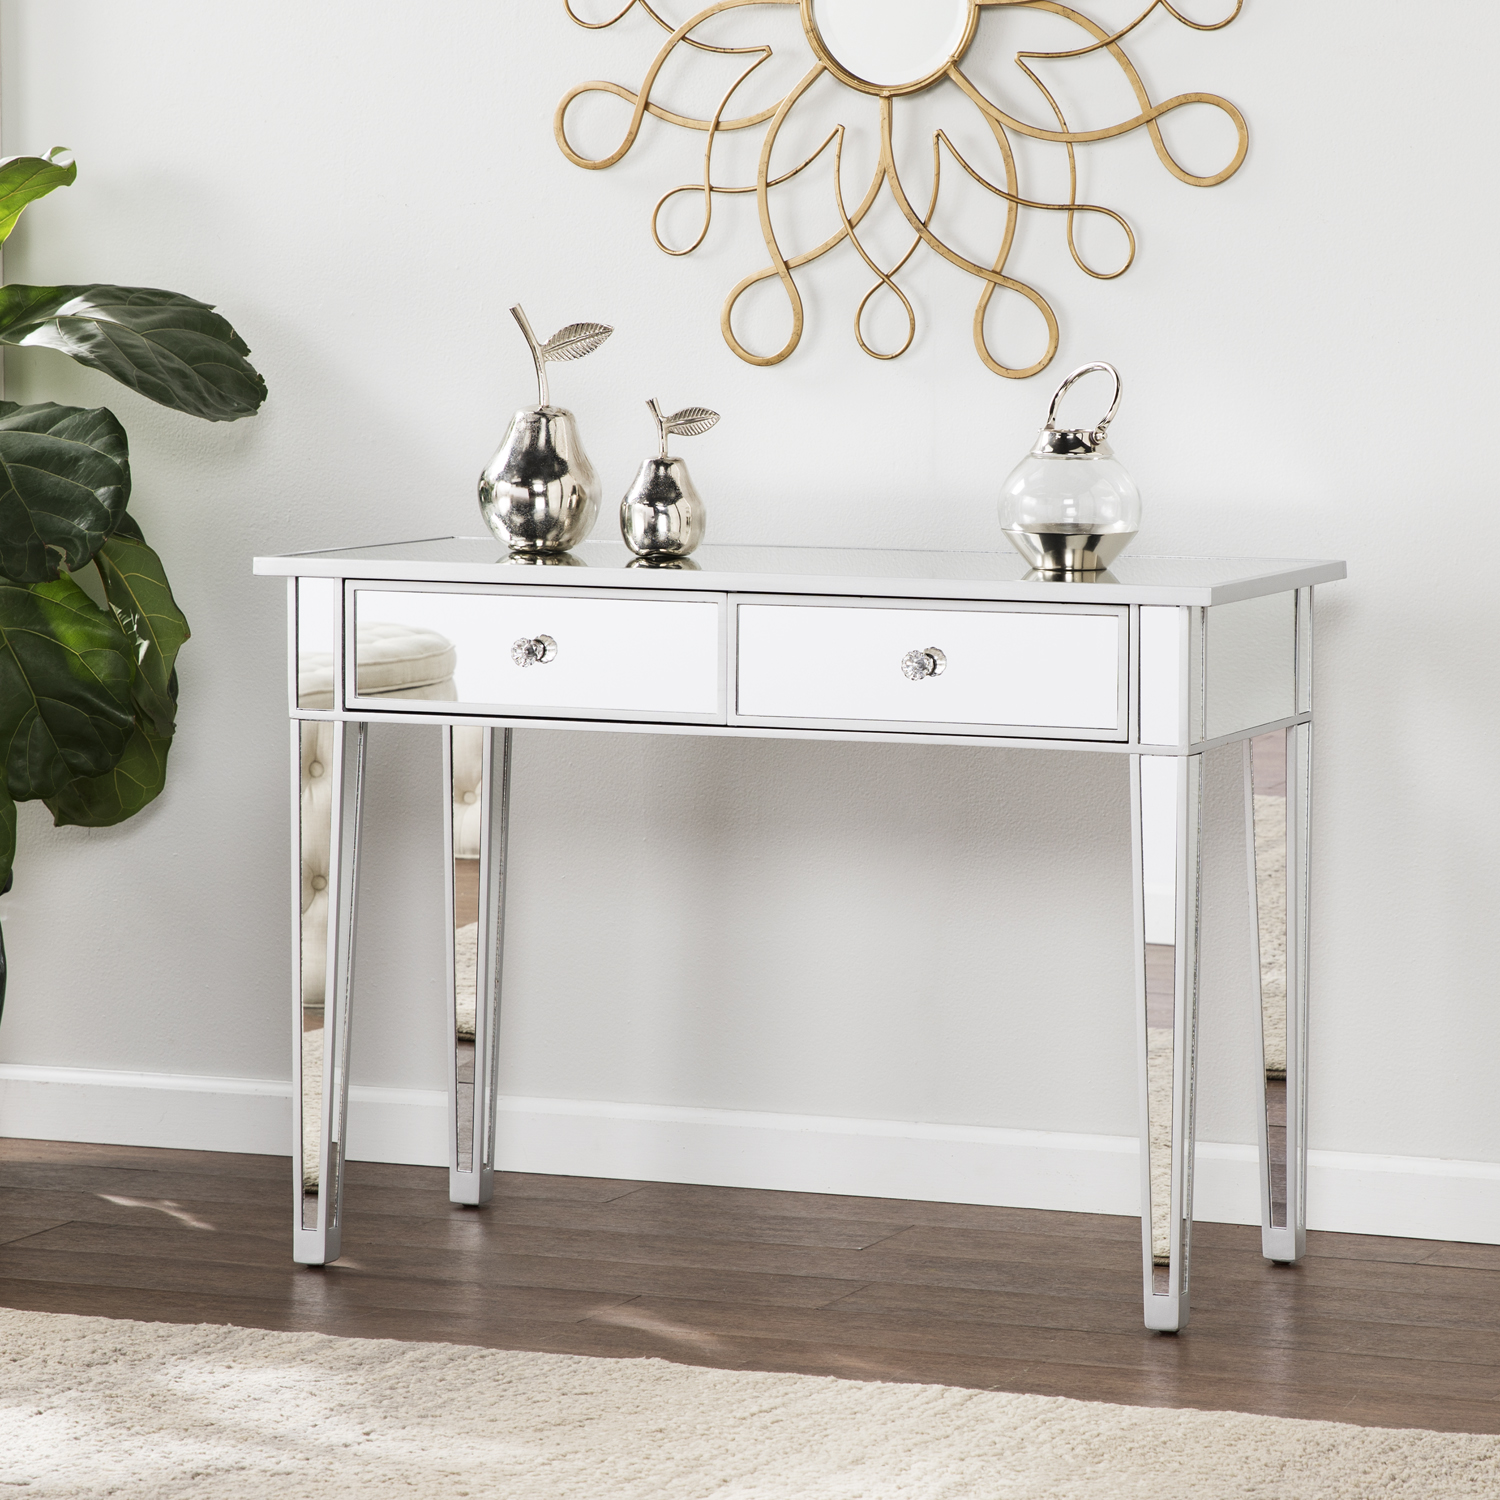 mirage mirrored drawer console table accent dorm room ping ikea round glass coffee oriental style lamps bathroom clock contemporary armchair mini rectangular patio umbrellas